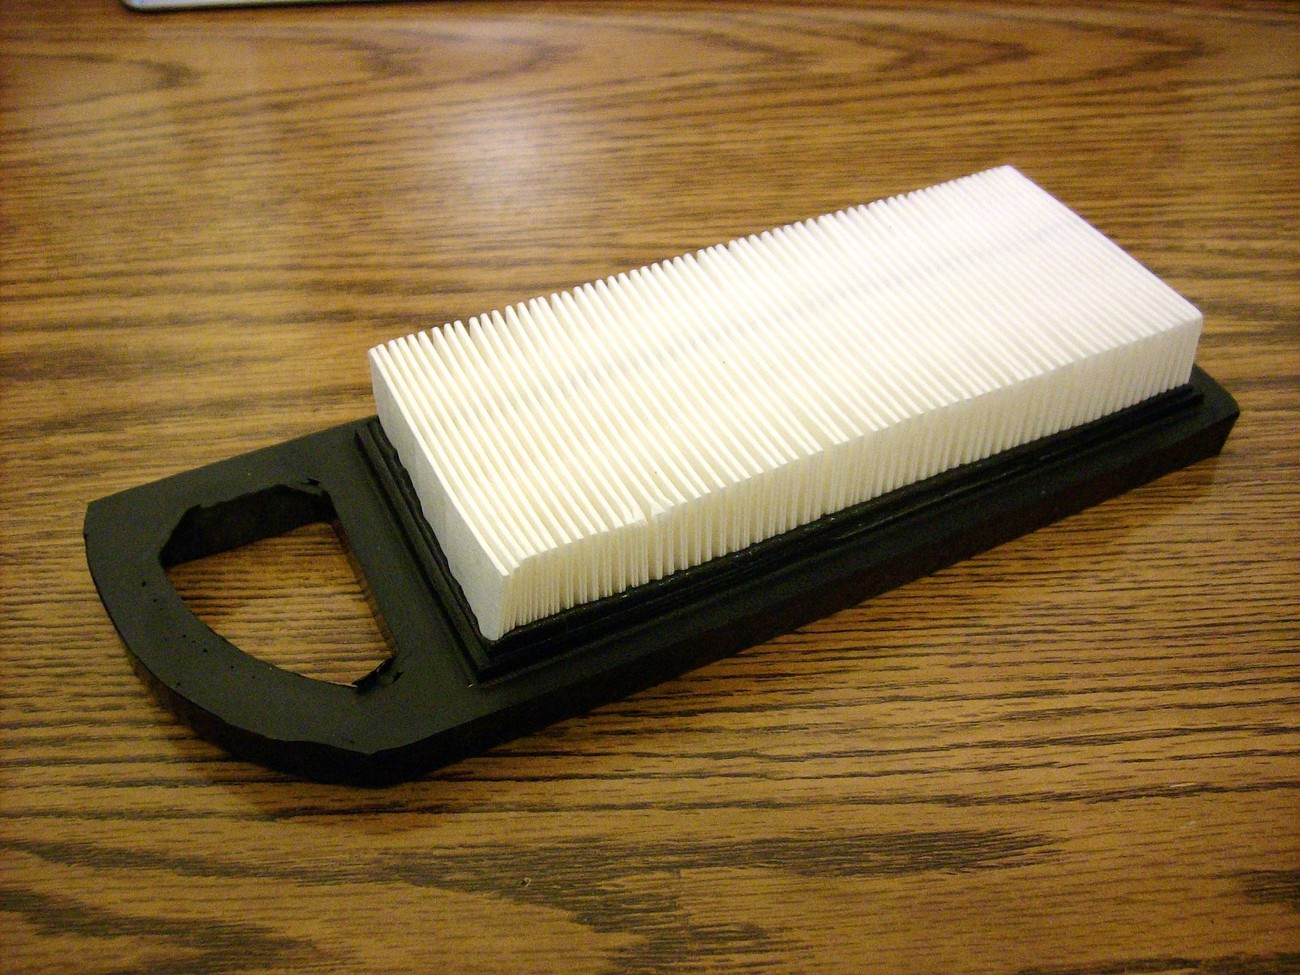 Briggs & Stratton air filter 697014 / 697153 / 697634 / 698083 / 795115 / 797008